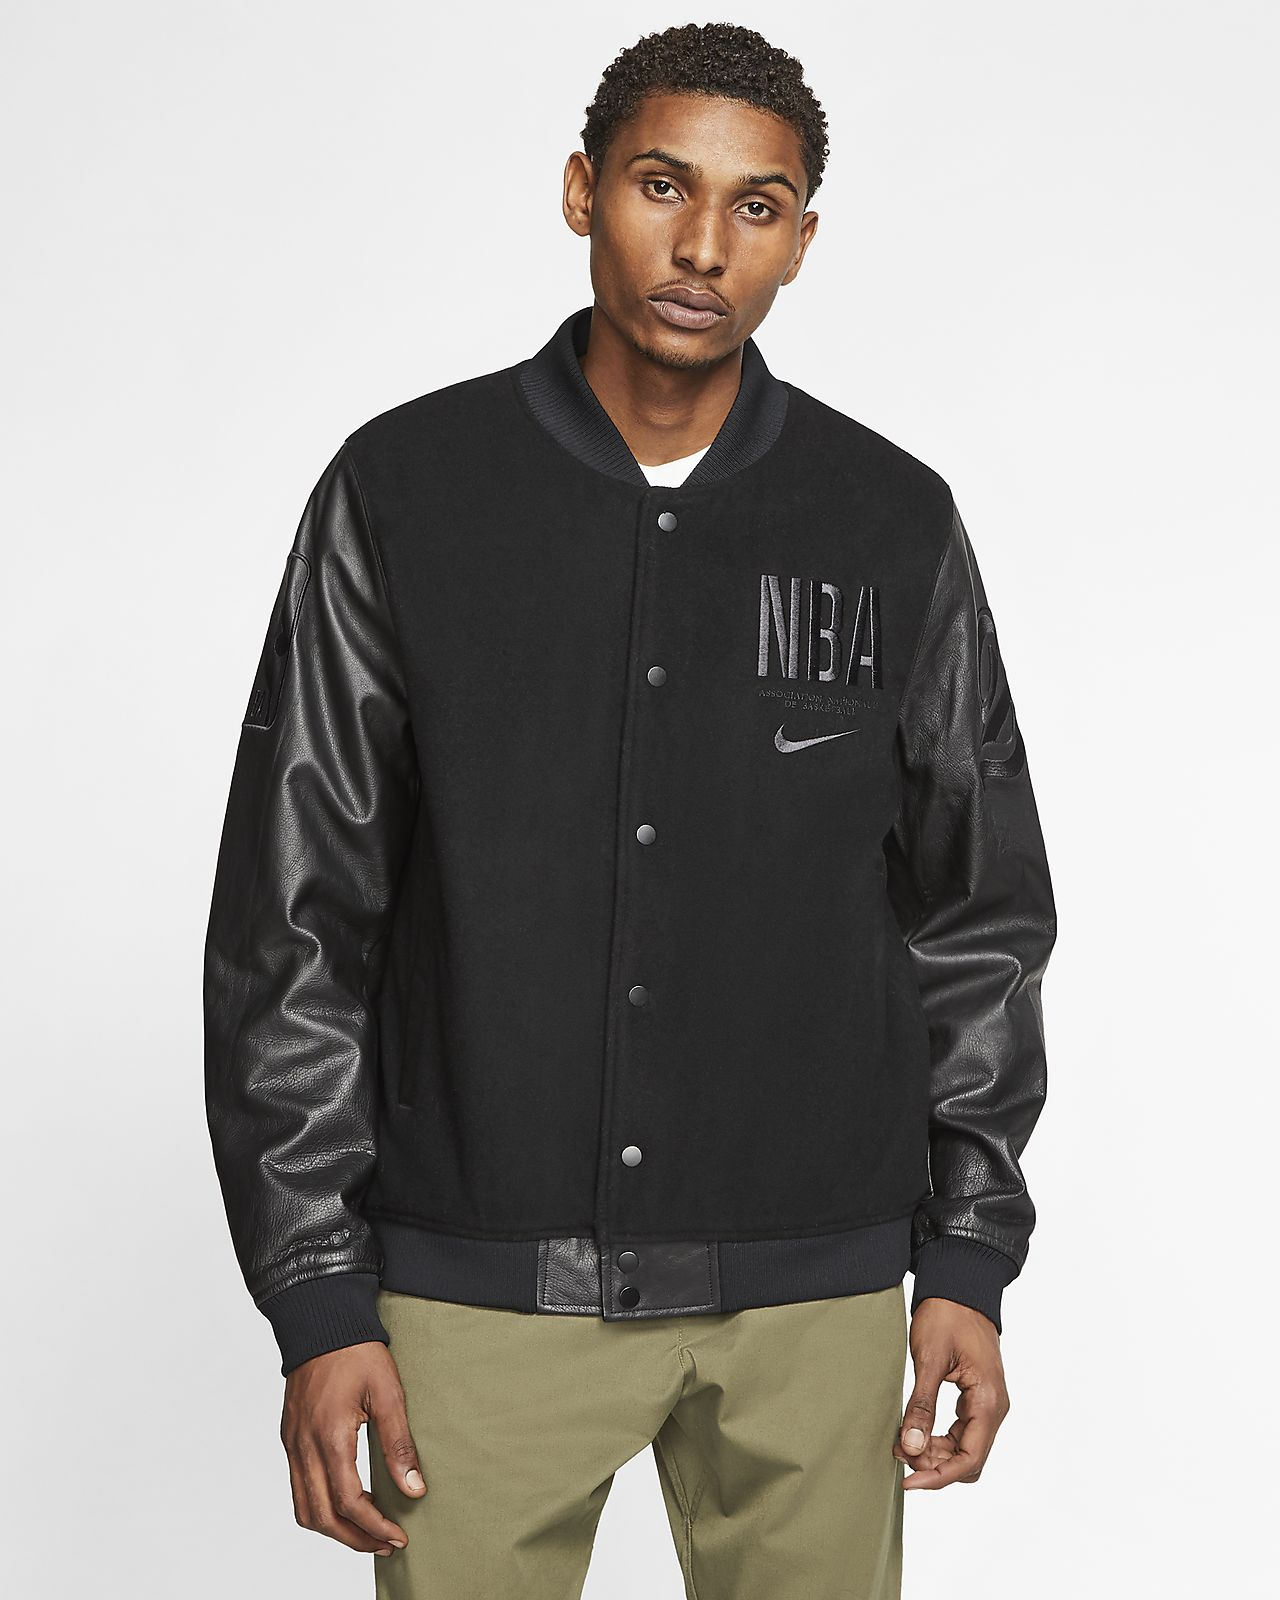 nike nba jacket in vendita | eBay